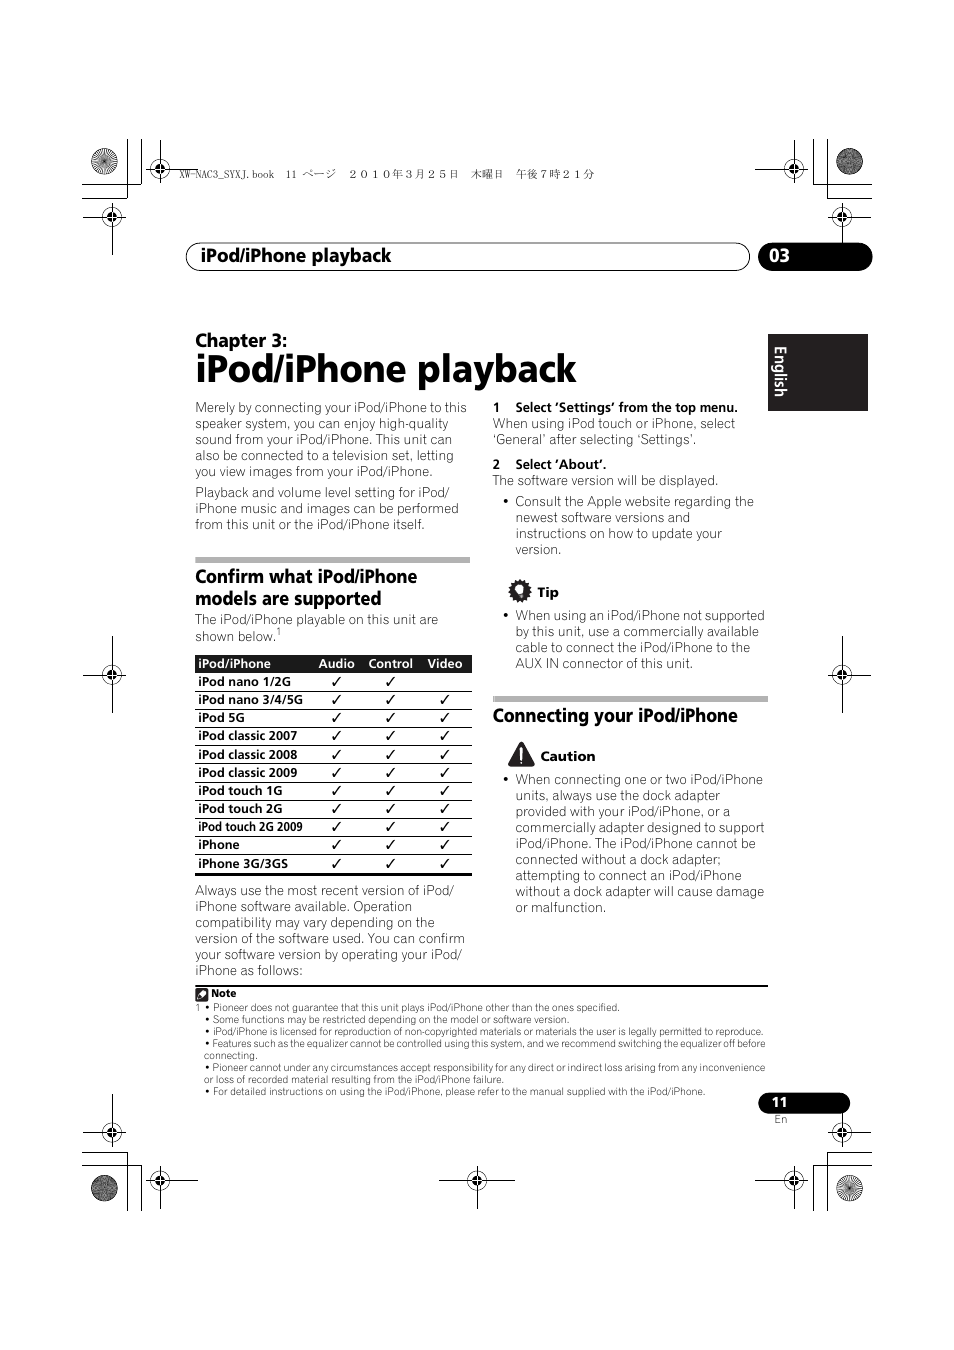 03 ipod/iphone playback, Confirm what ipod/iphone models are supported,  Connecting your ipod/iphone | Pioneer XW-NAC3-R User Manual | Page 11 / 132